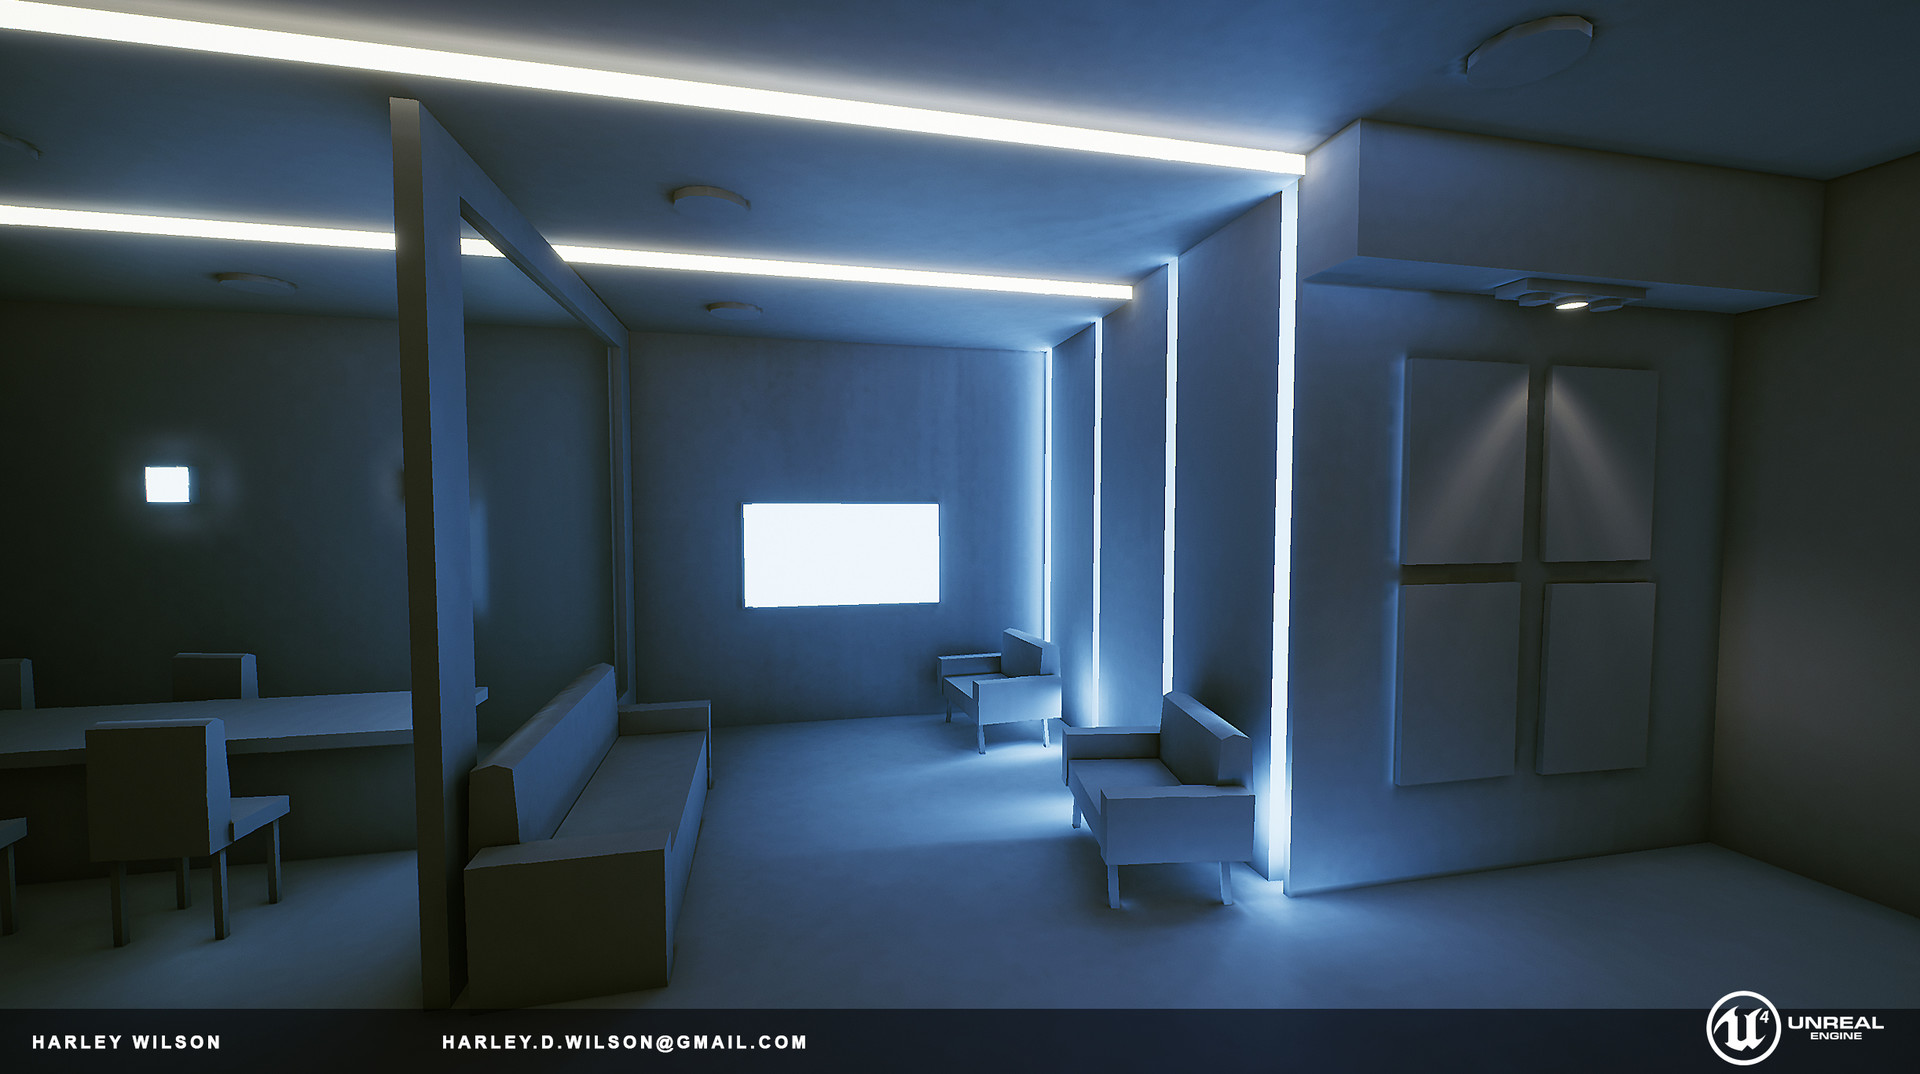 ArtStation - Lighting Studies [UE4], Harley Wilson